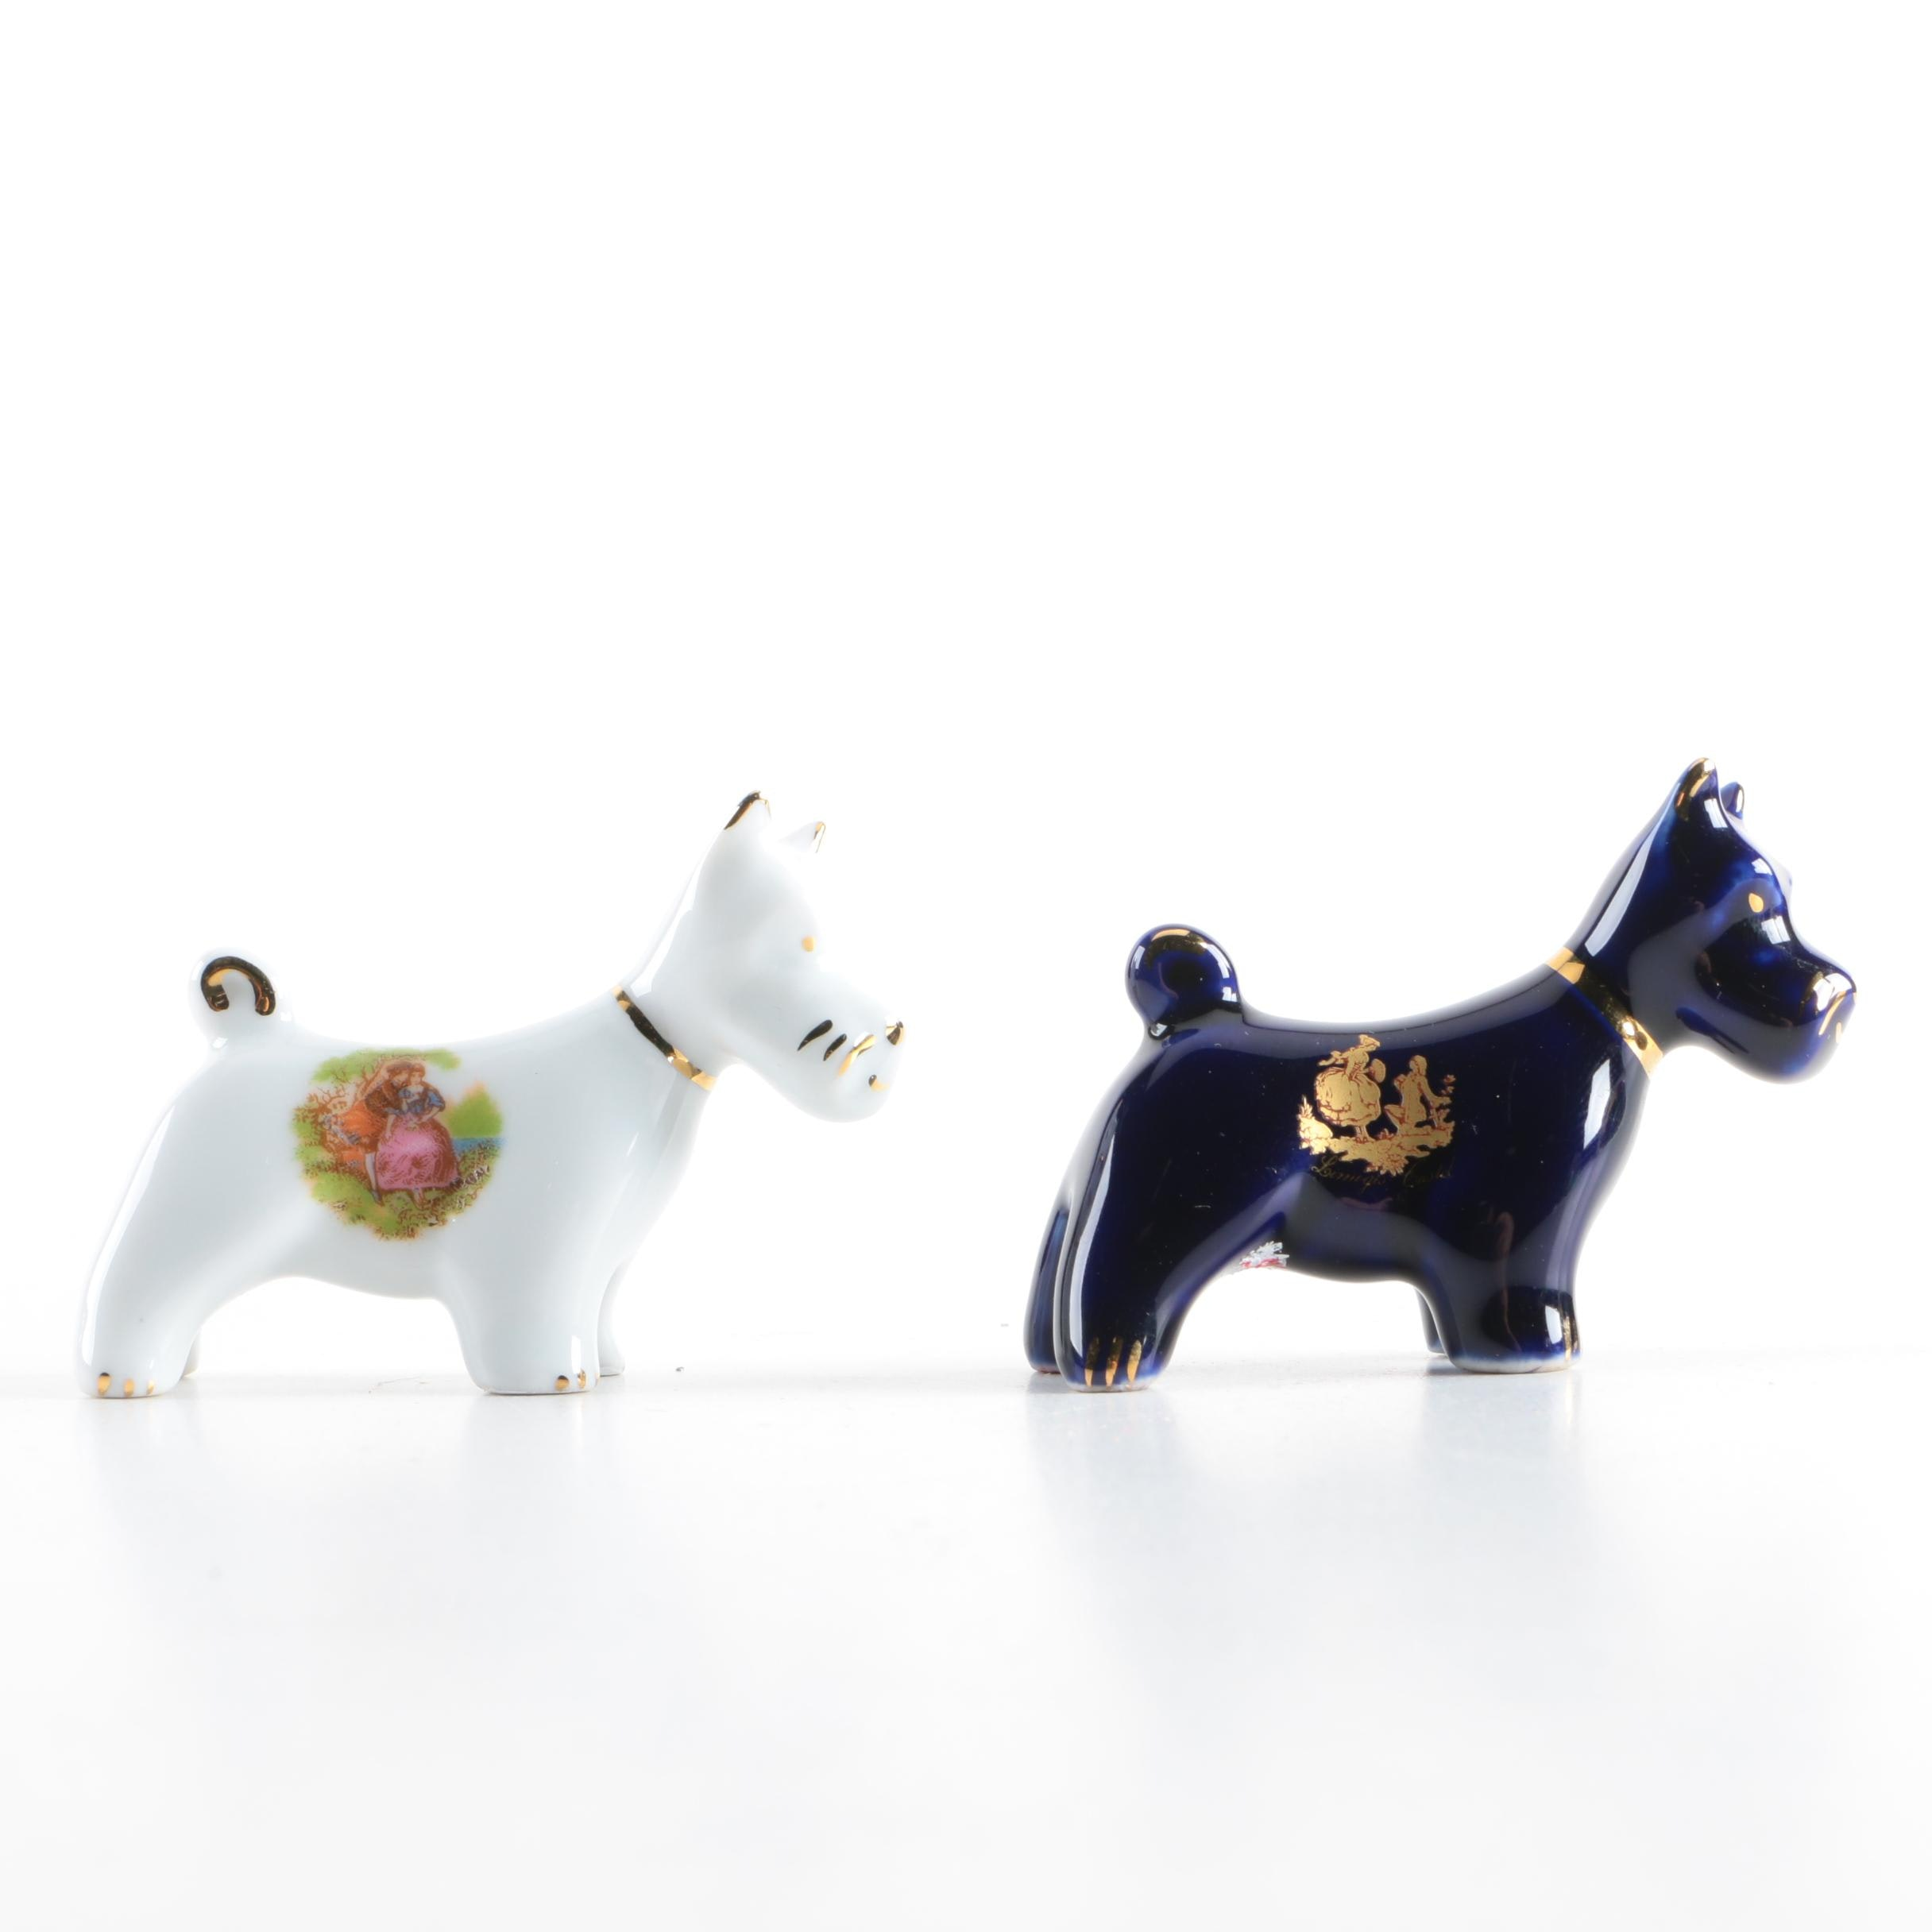 Limoges Castel, France Porcelain Scottish Terrier Dog Figurines